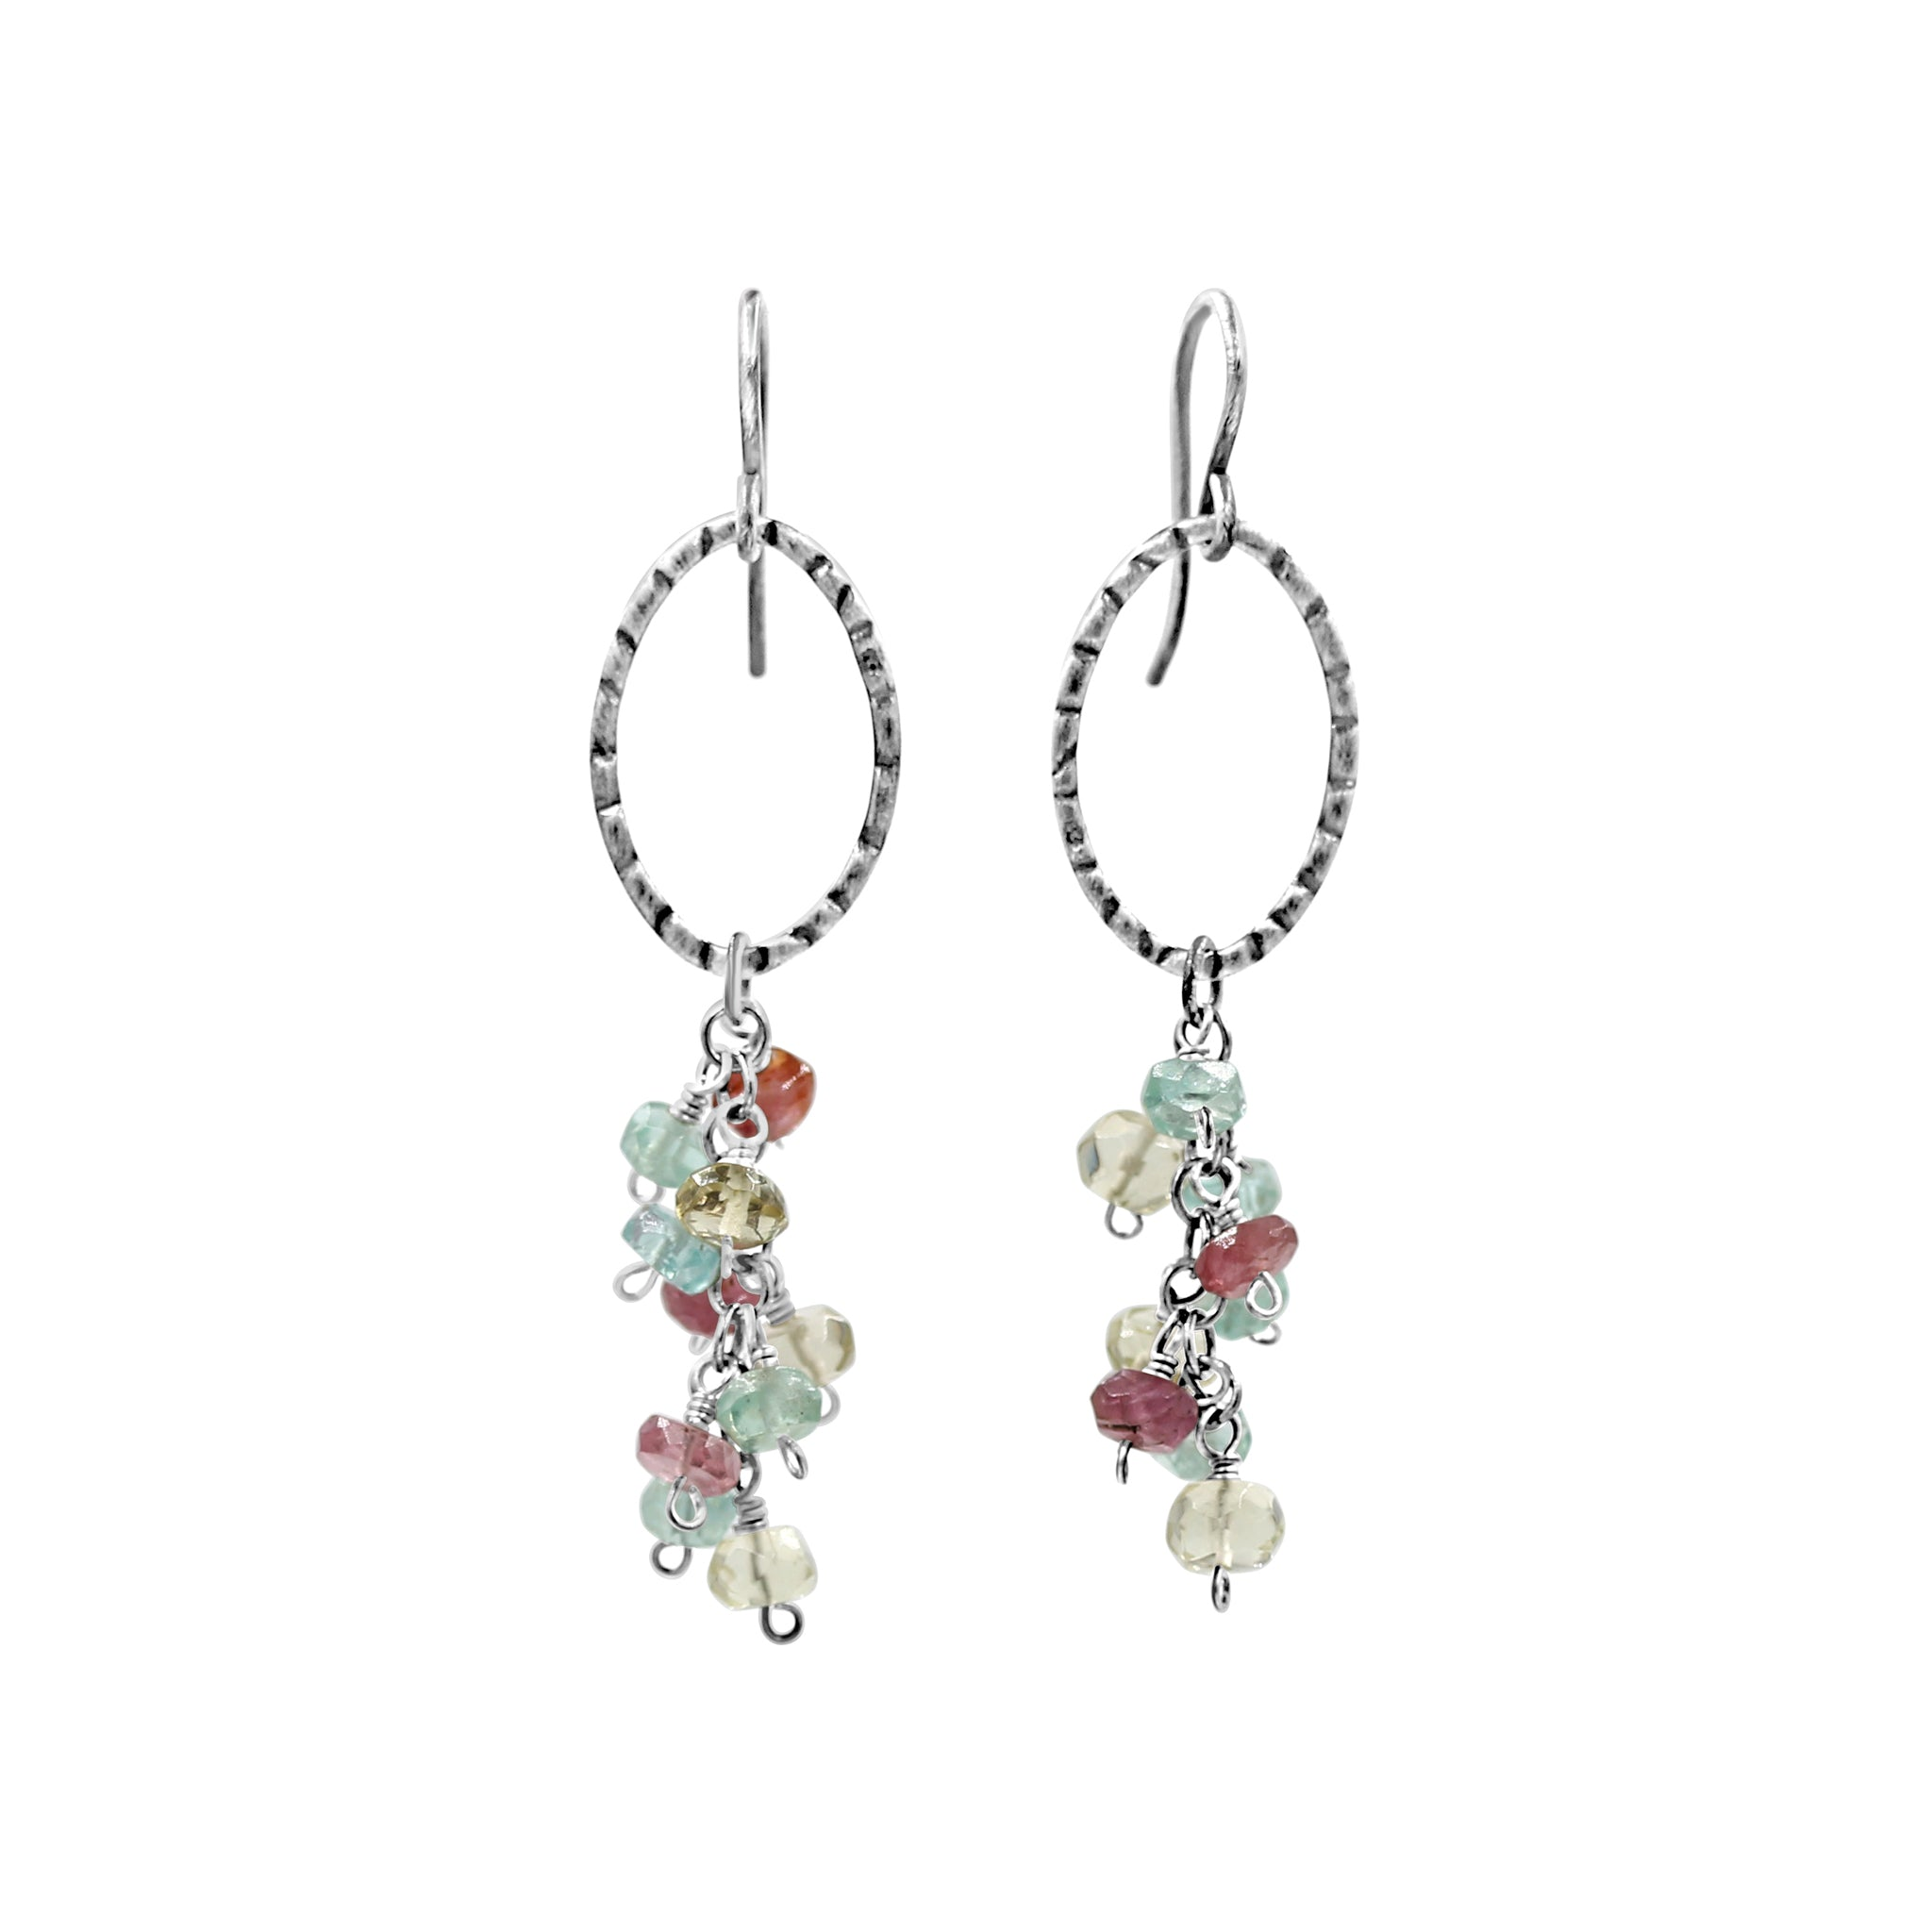 Spring Bloom Earrings - Sati Gems Hawaii Healing Crystal Gemstone Jewelry